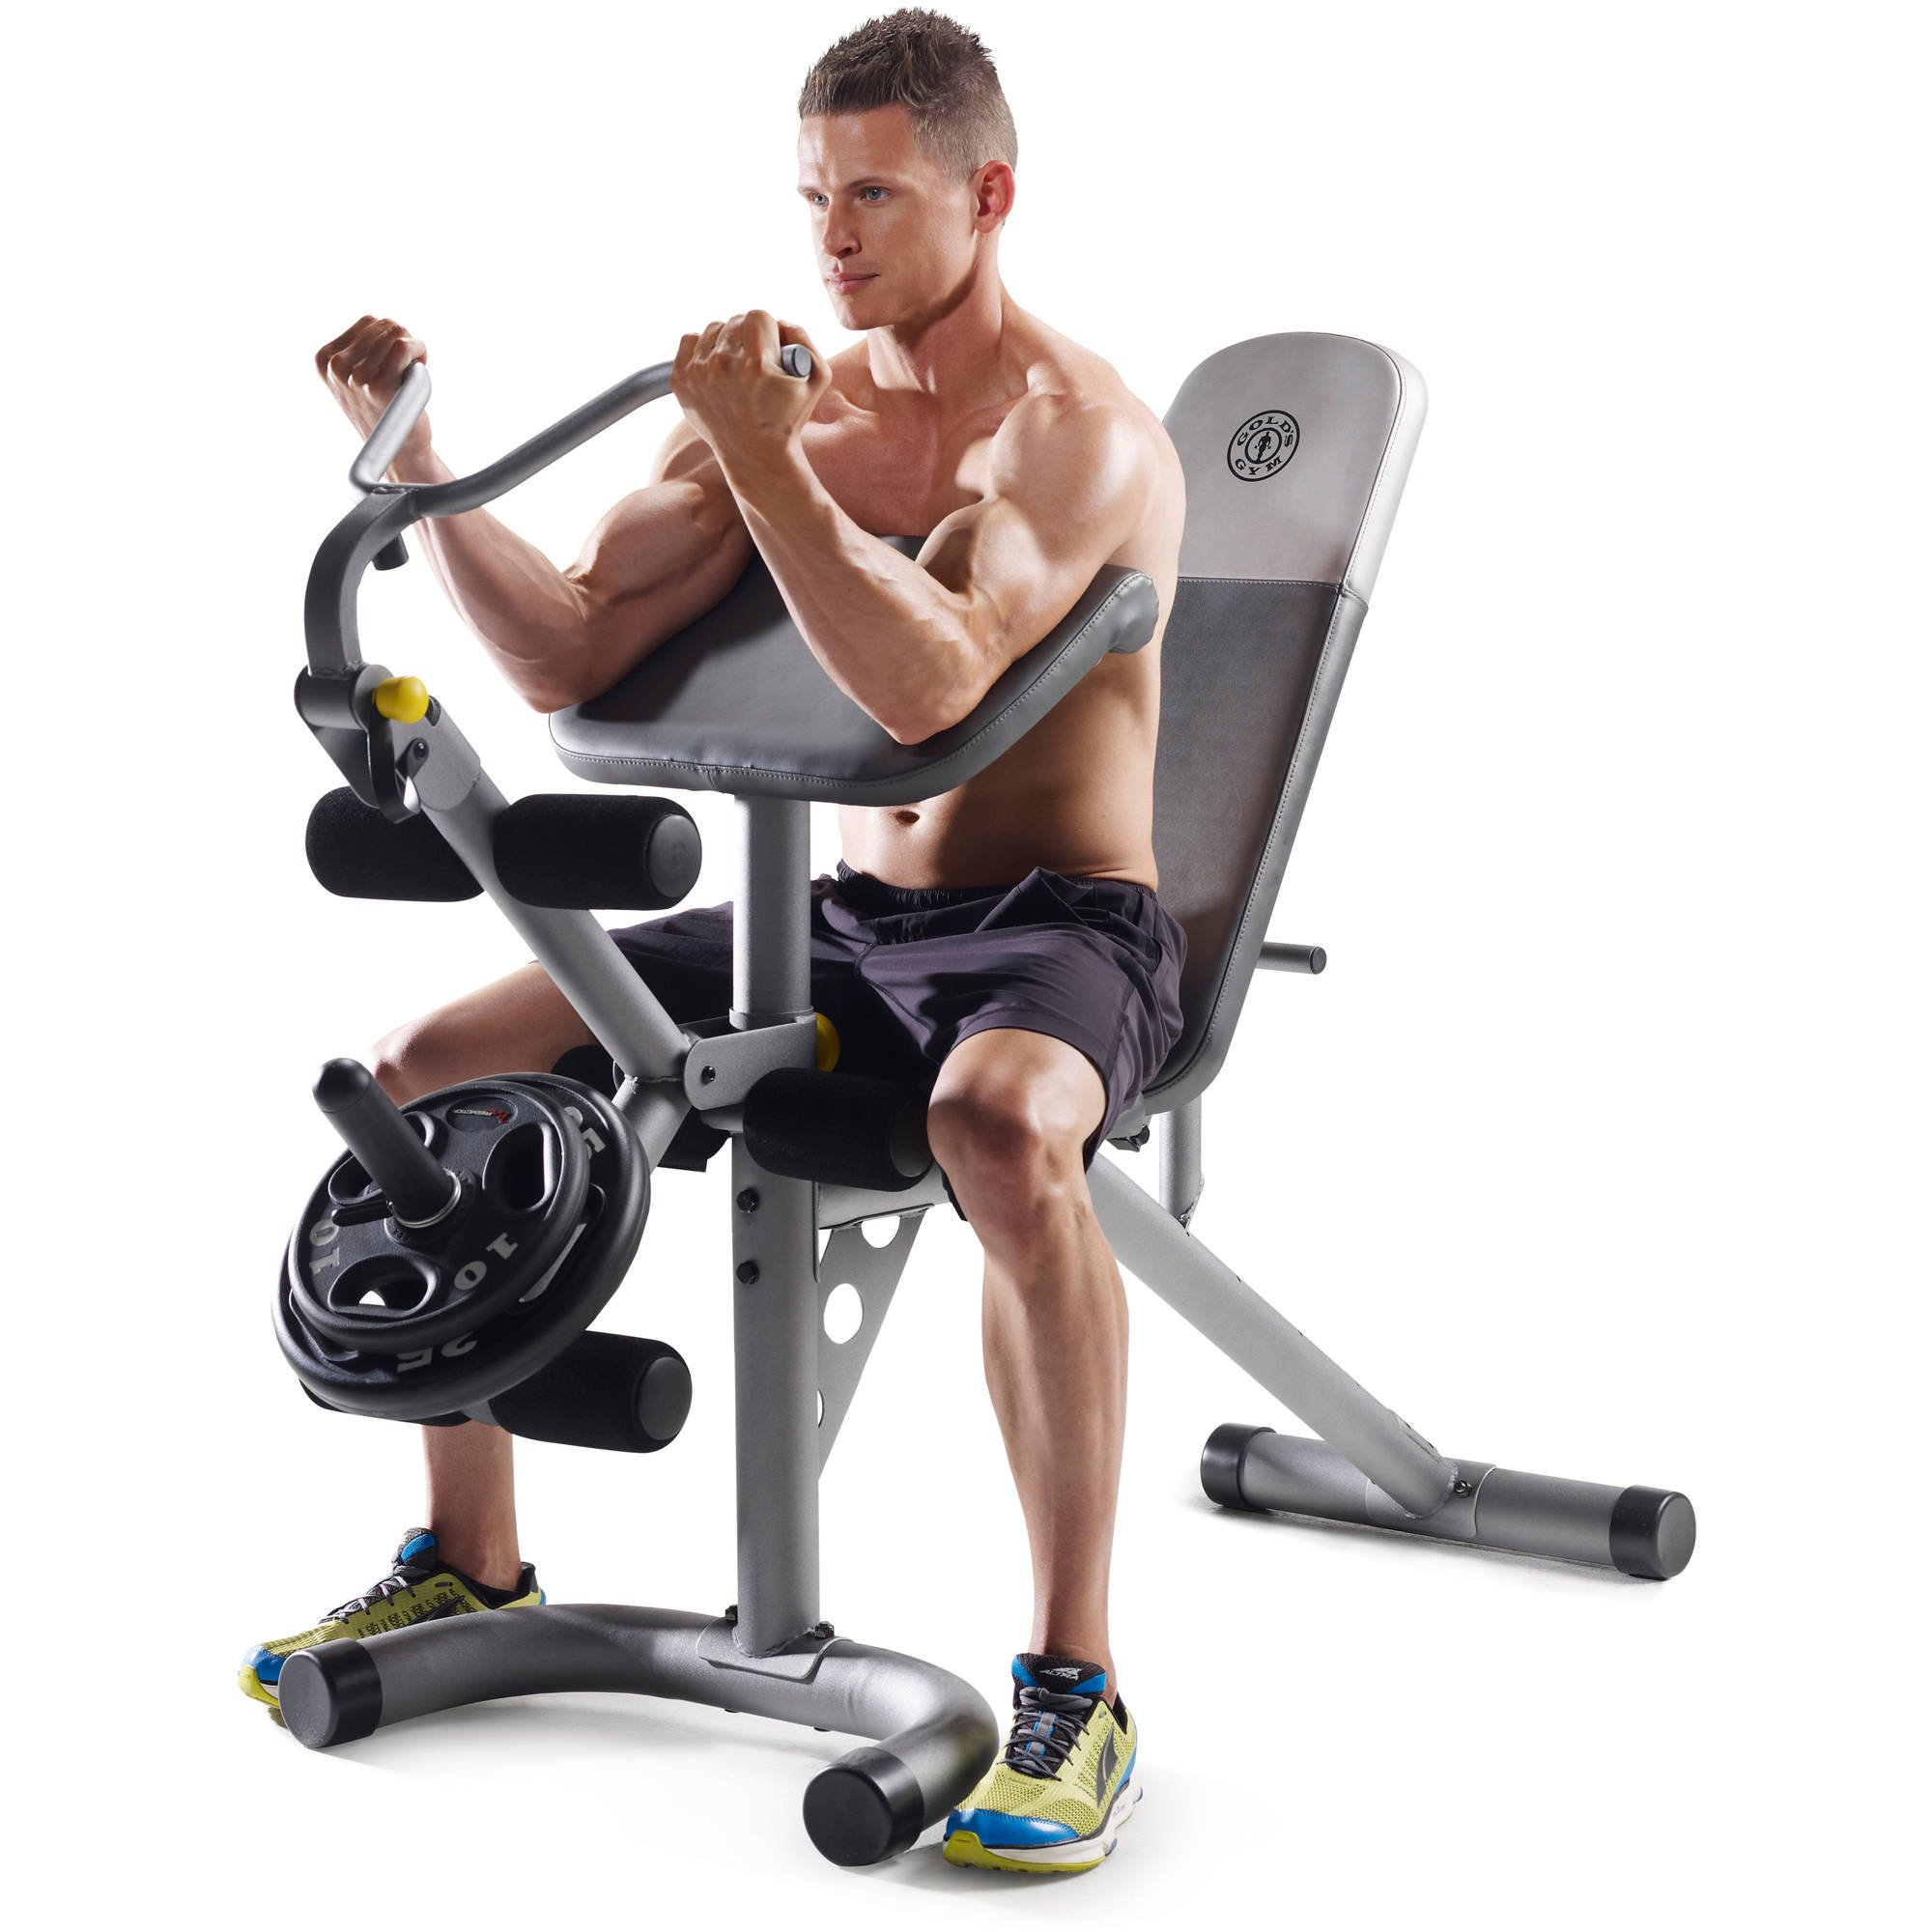 Golds Gym GGBE19615 XRS 20 Utility Bench by Golds Gym